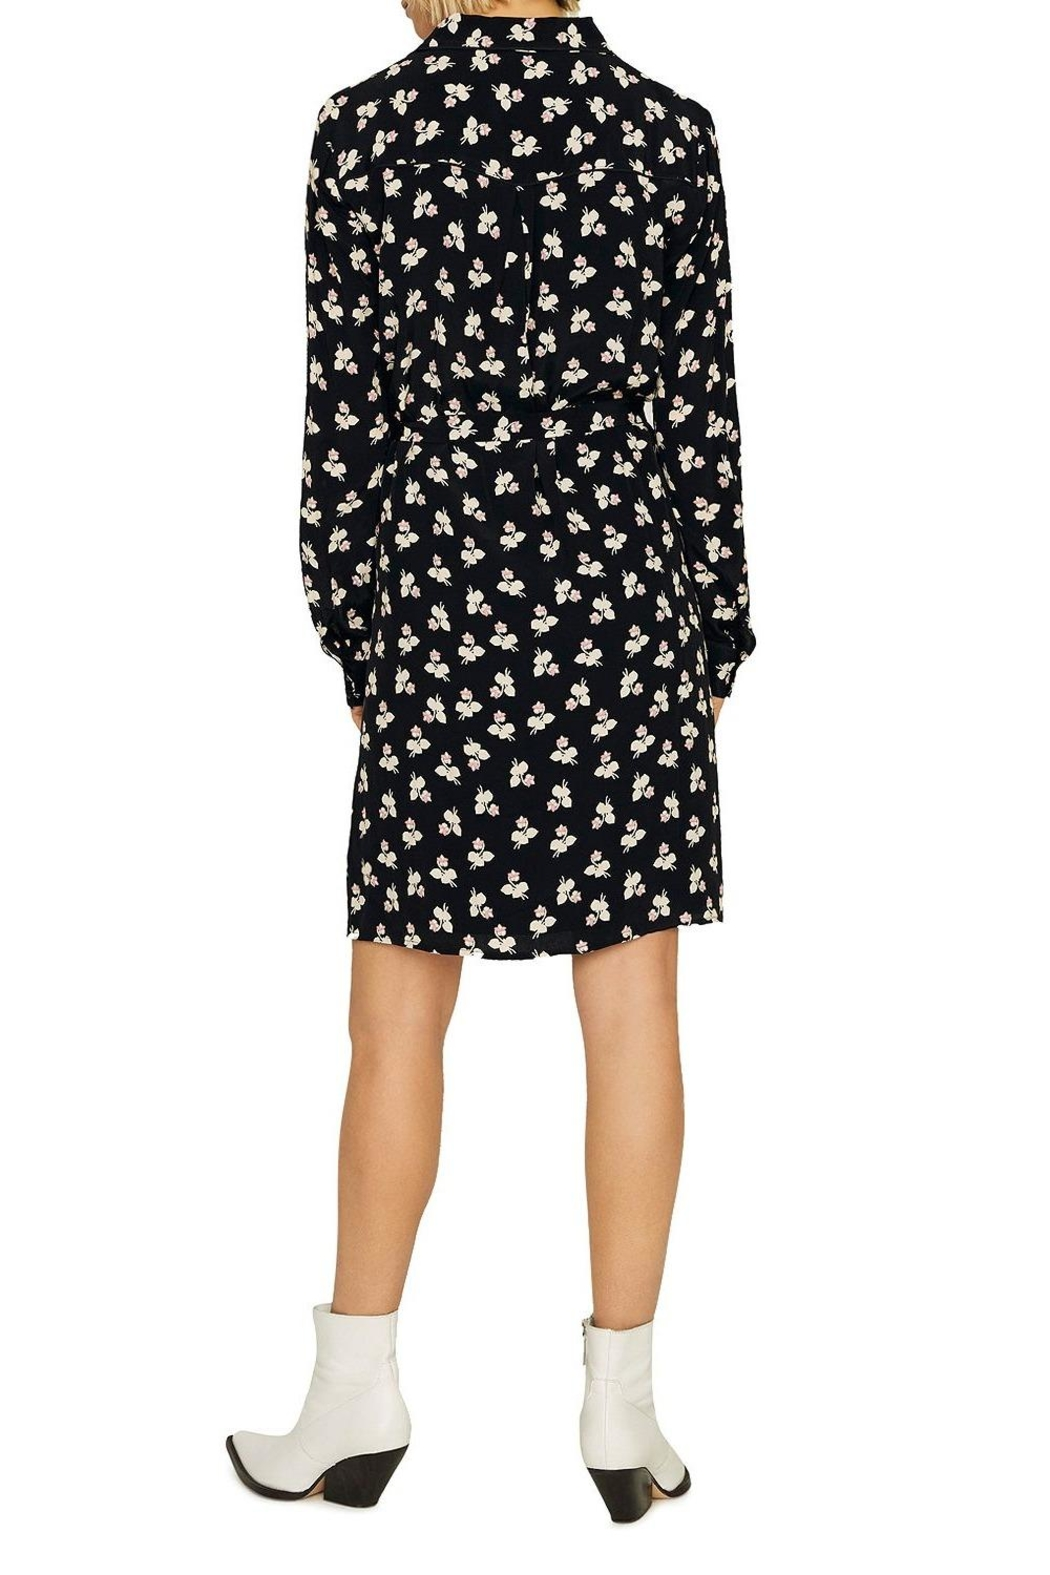 Sanctuary Etta Shirt Dress - Side Cropped Image